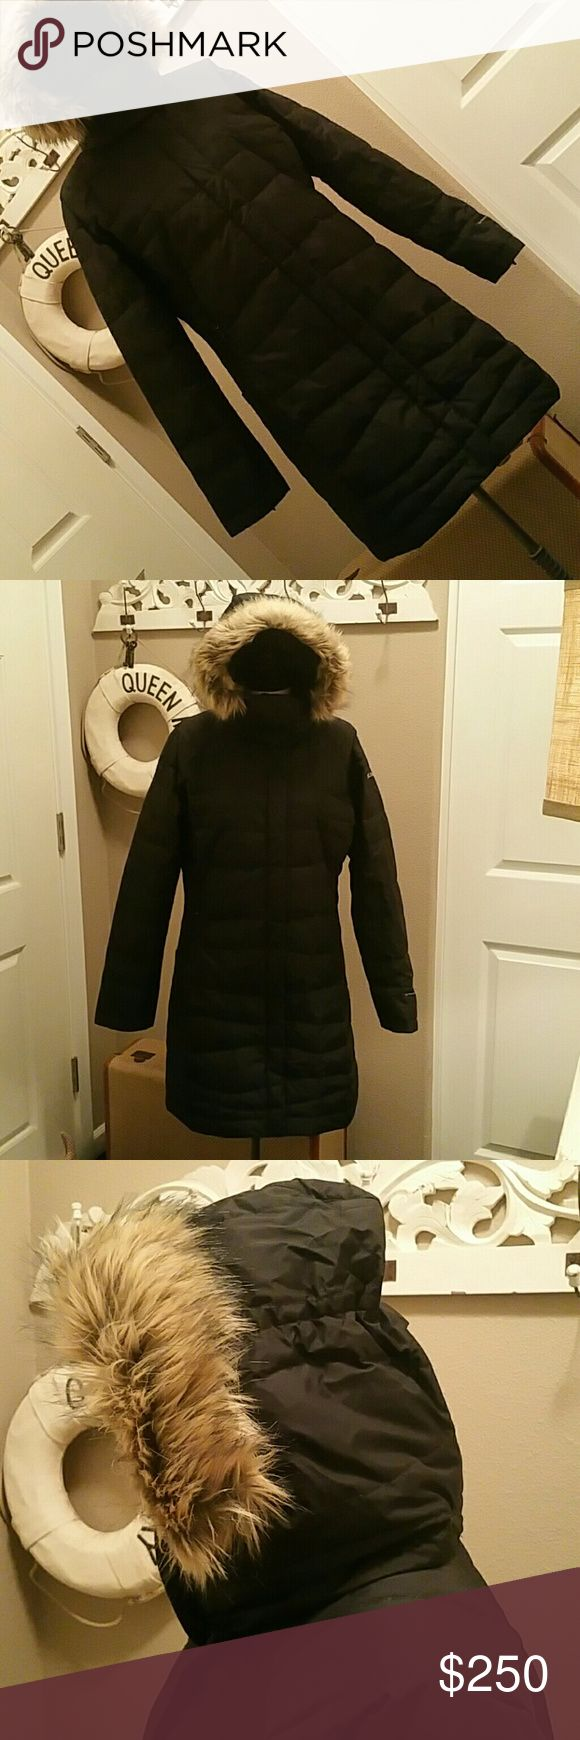 Columbia Sportswear Long Titanium Down Puffer Coat NWOT gorgeous down filled coat. Faux fur lined removable hood. This is the real thing and quality to last a life time. Similar style selling now for $500. If you need a stylish super warm coat...this is it!! Columbia Sportswear Jackets & Coats Puffers